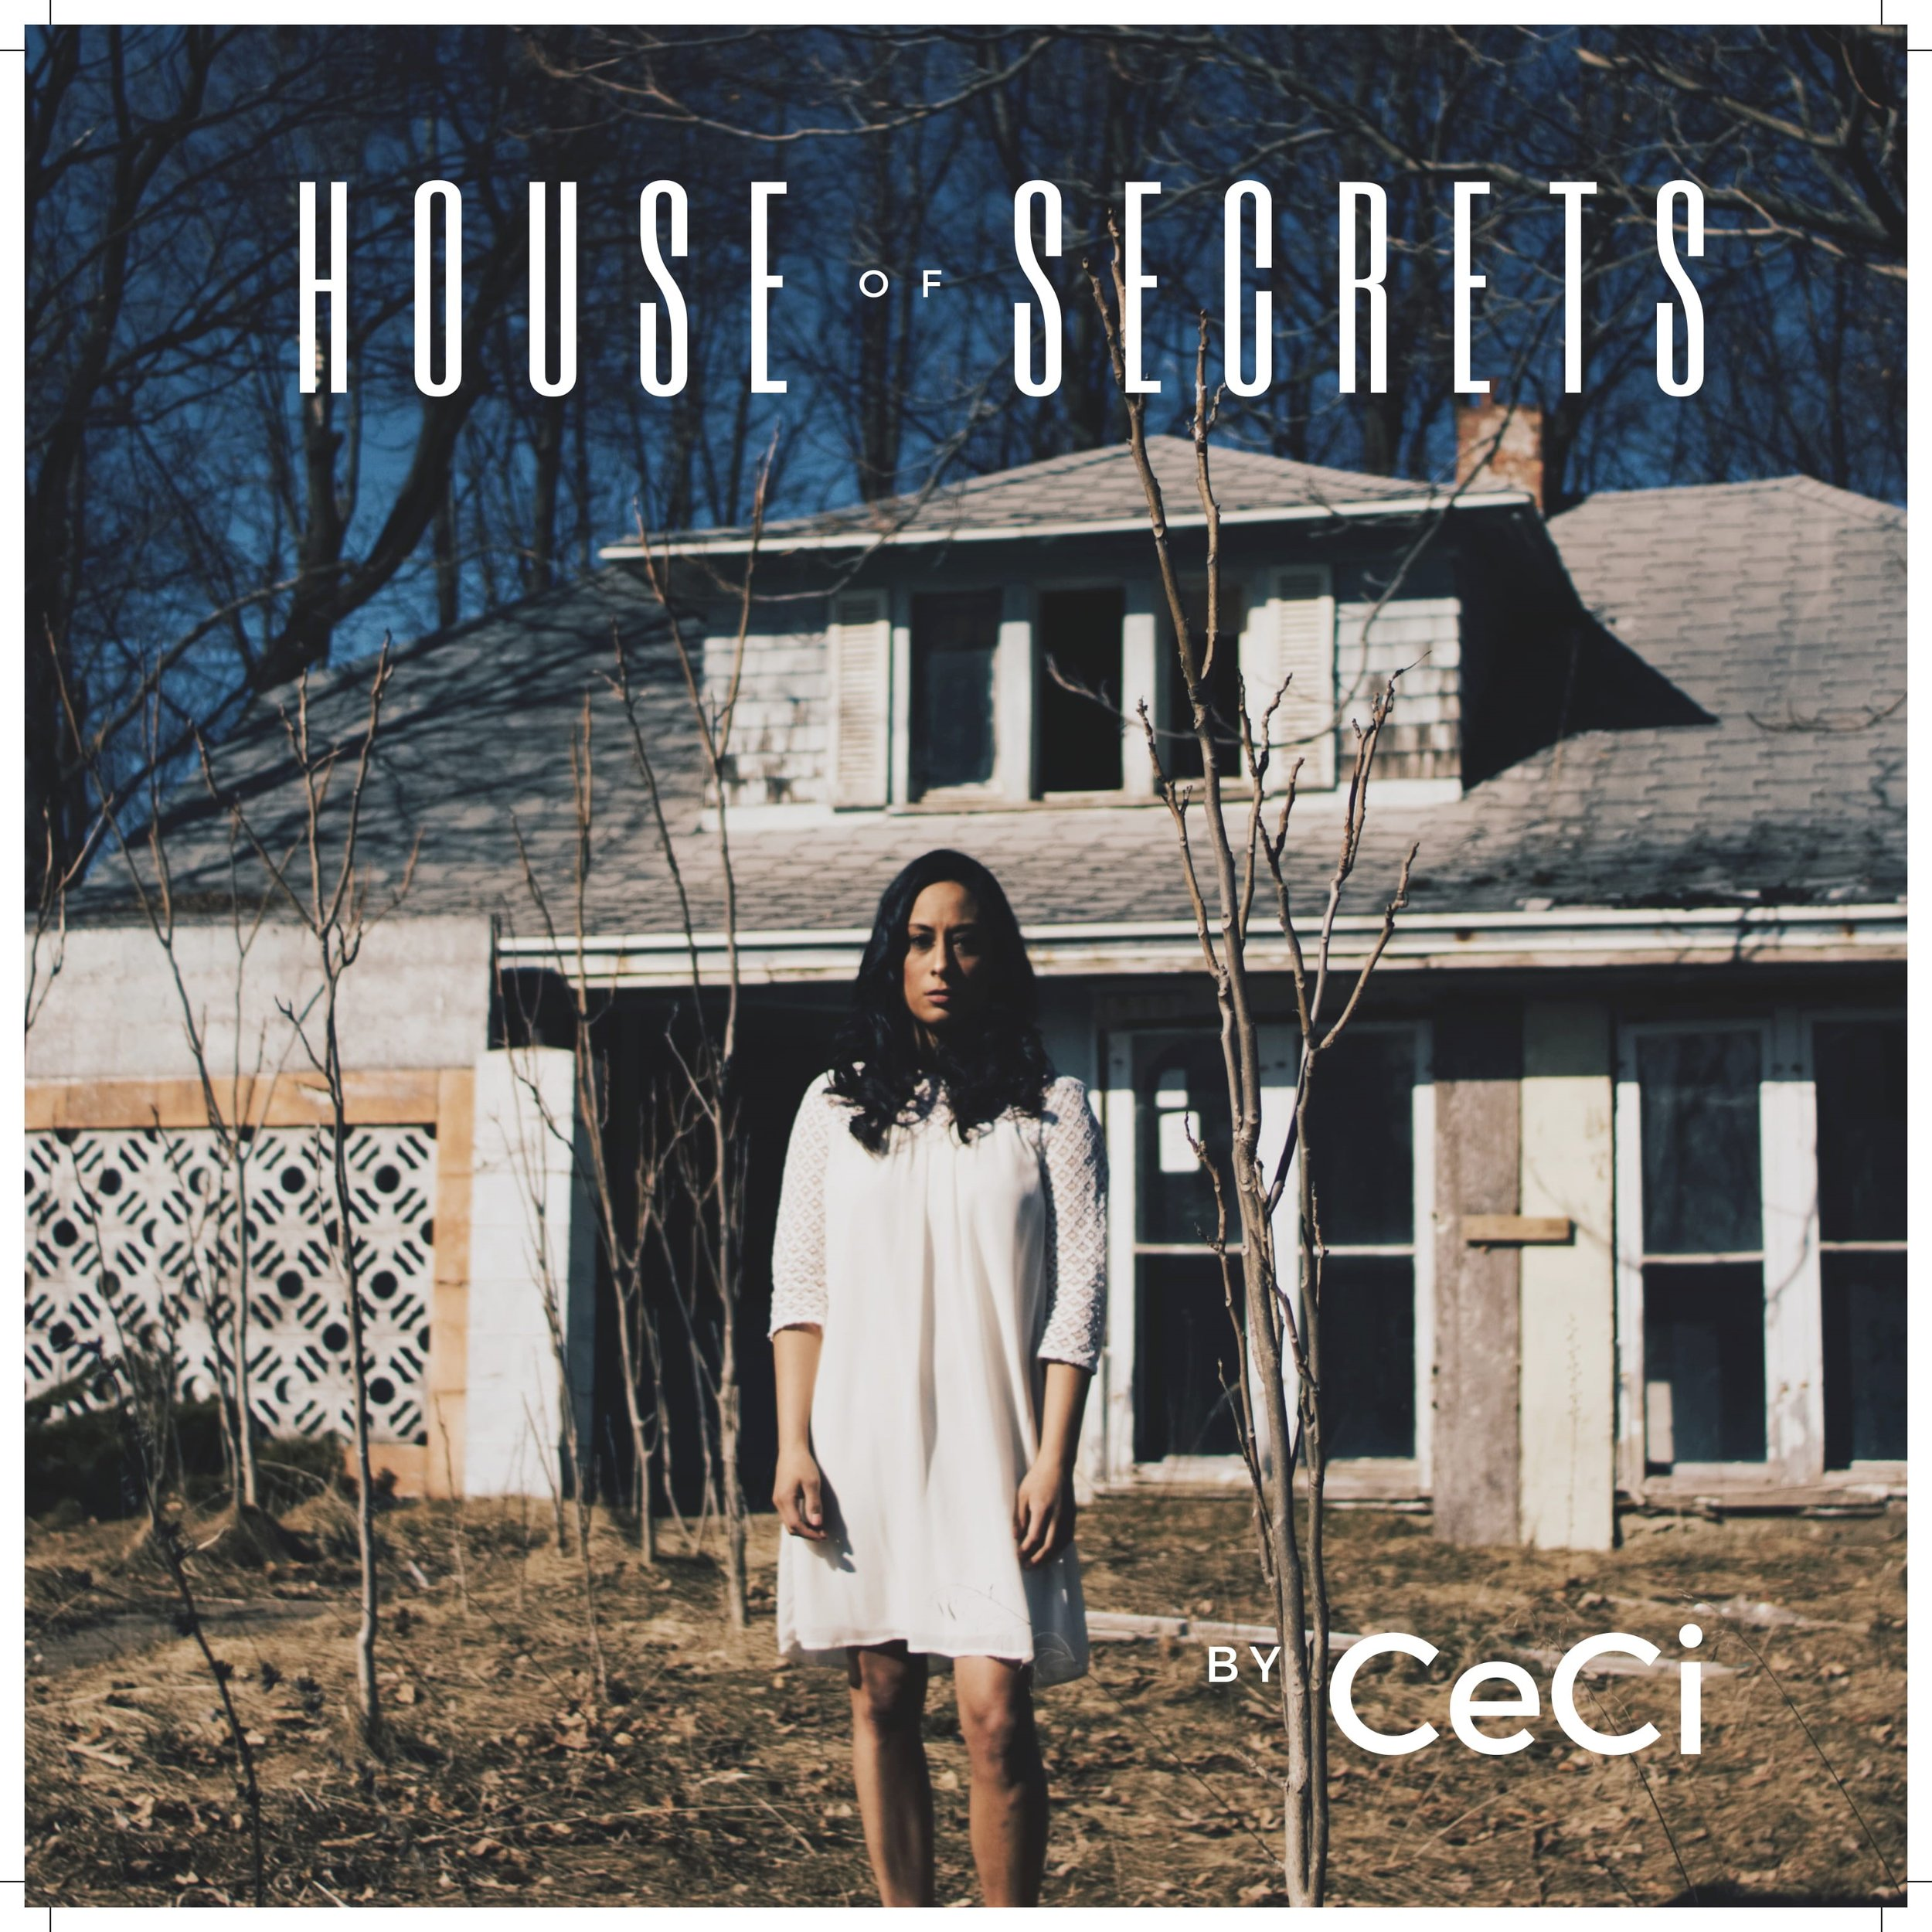 """Ceci's first single, """"House of Secrets,"""" is available on all media outlets."""